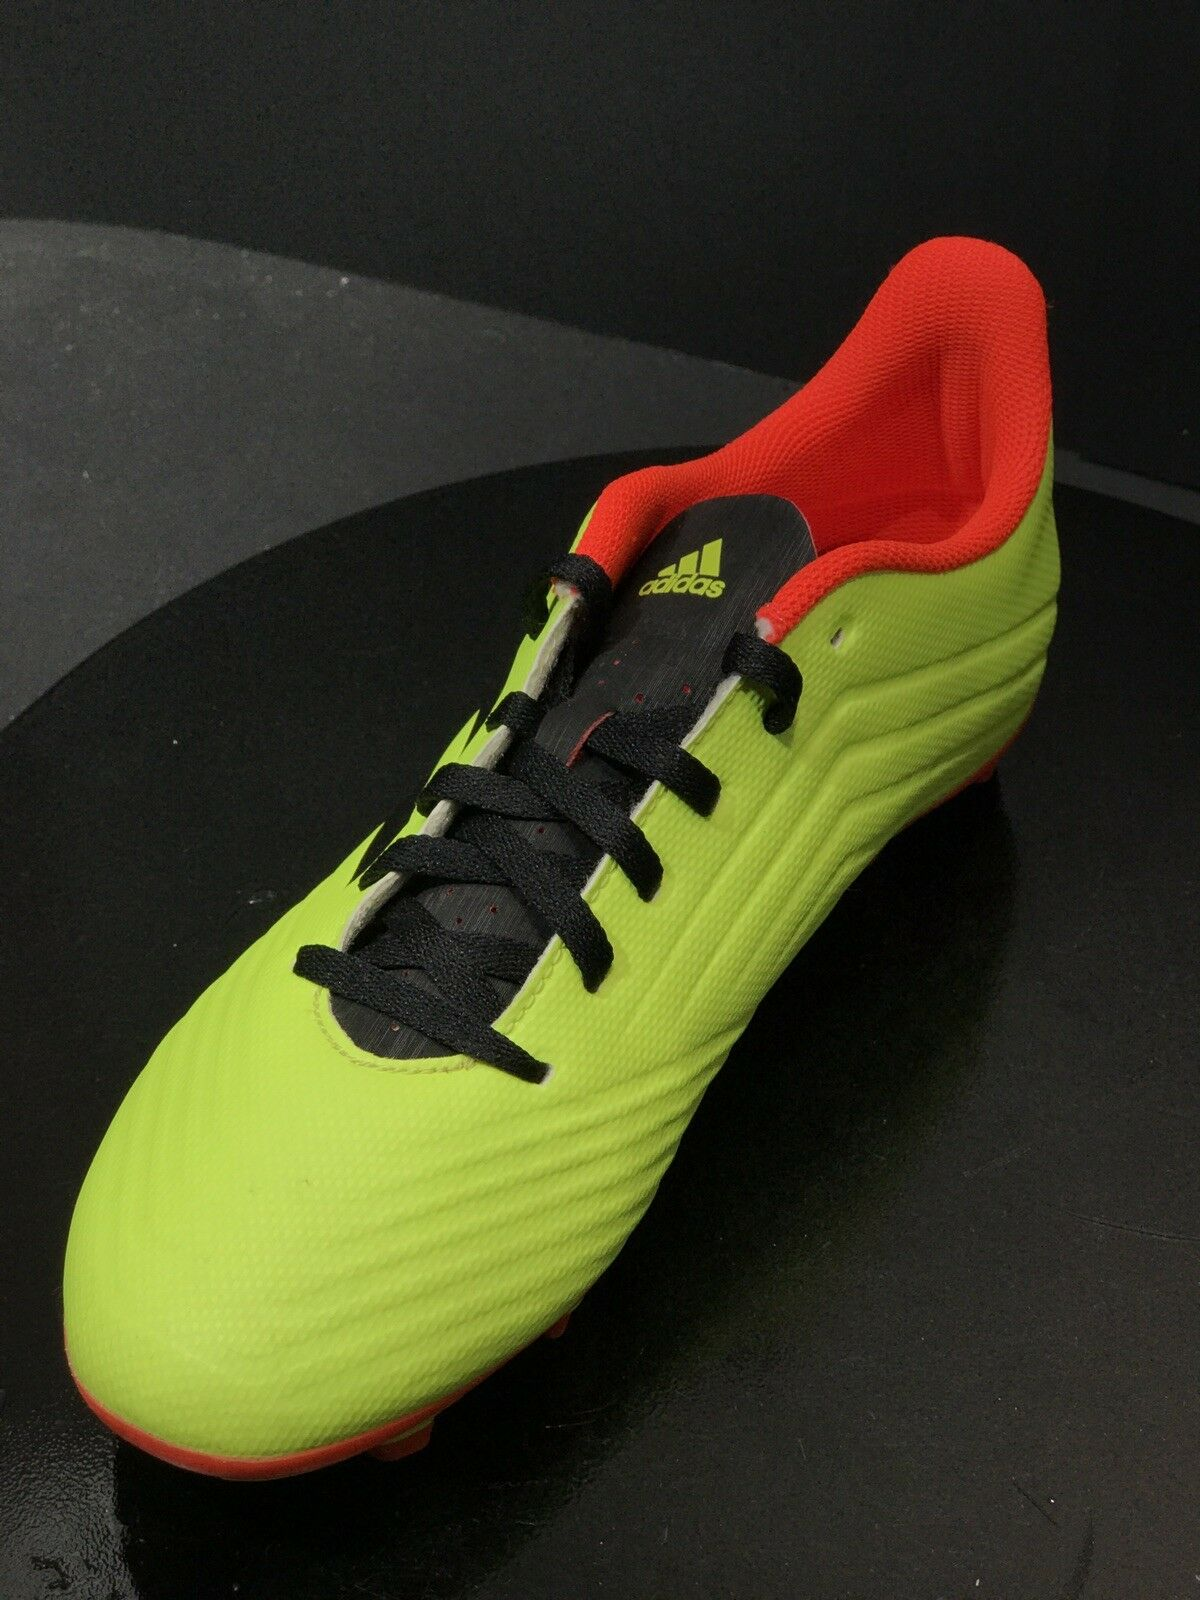 Adidas Predator 18.4 Firm Ground Mens Soccer Boot Yellow Energy Mode Size US 7 M